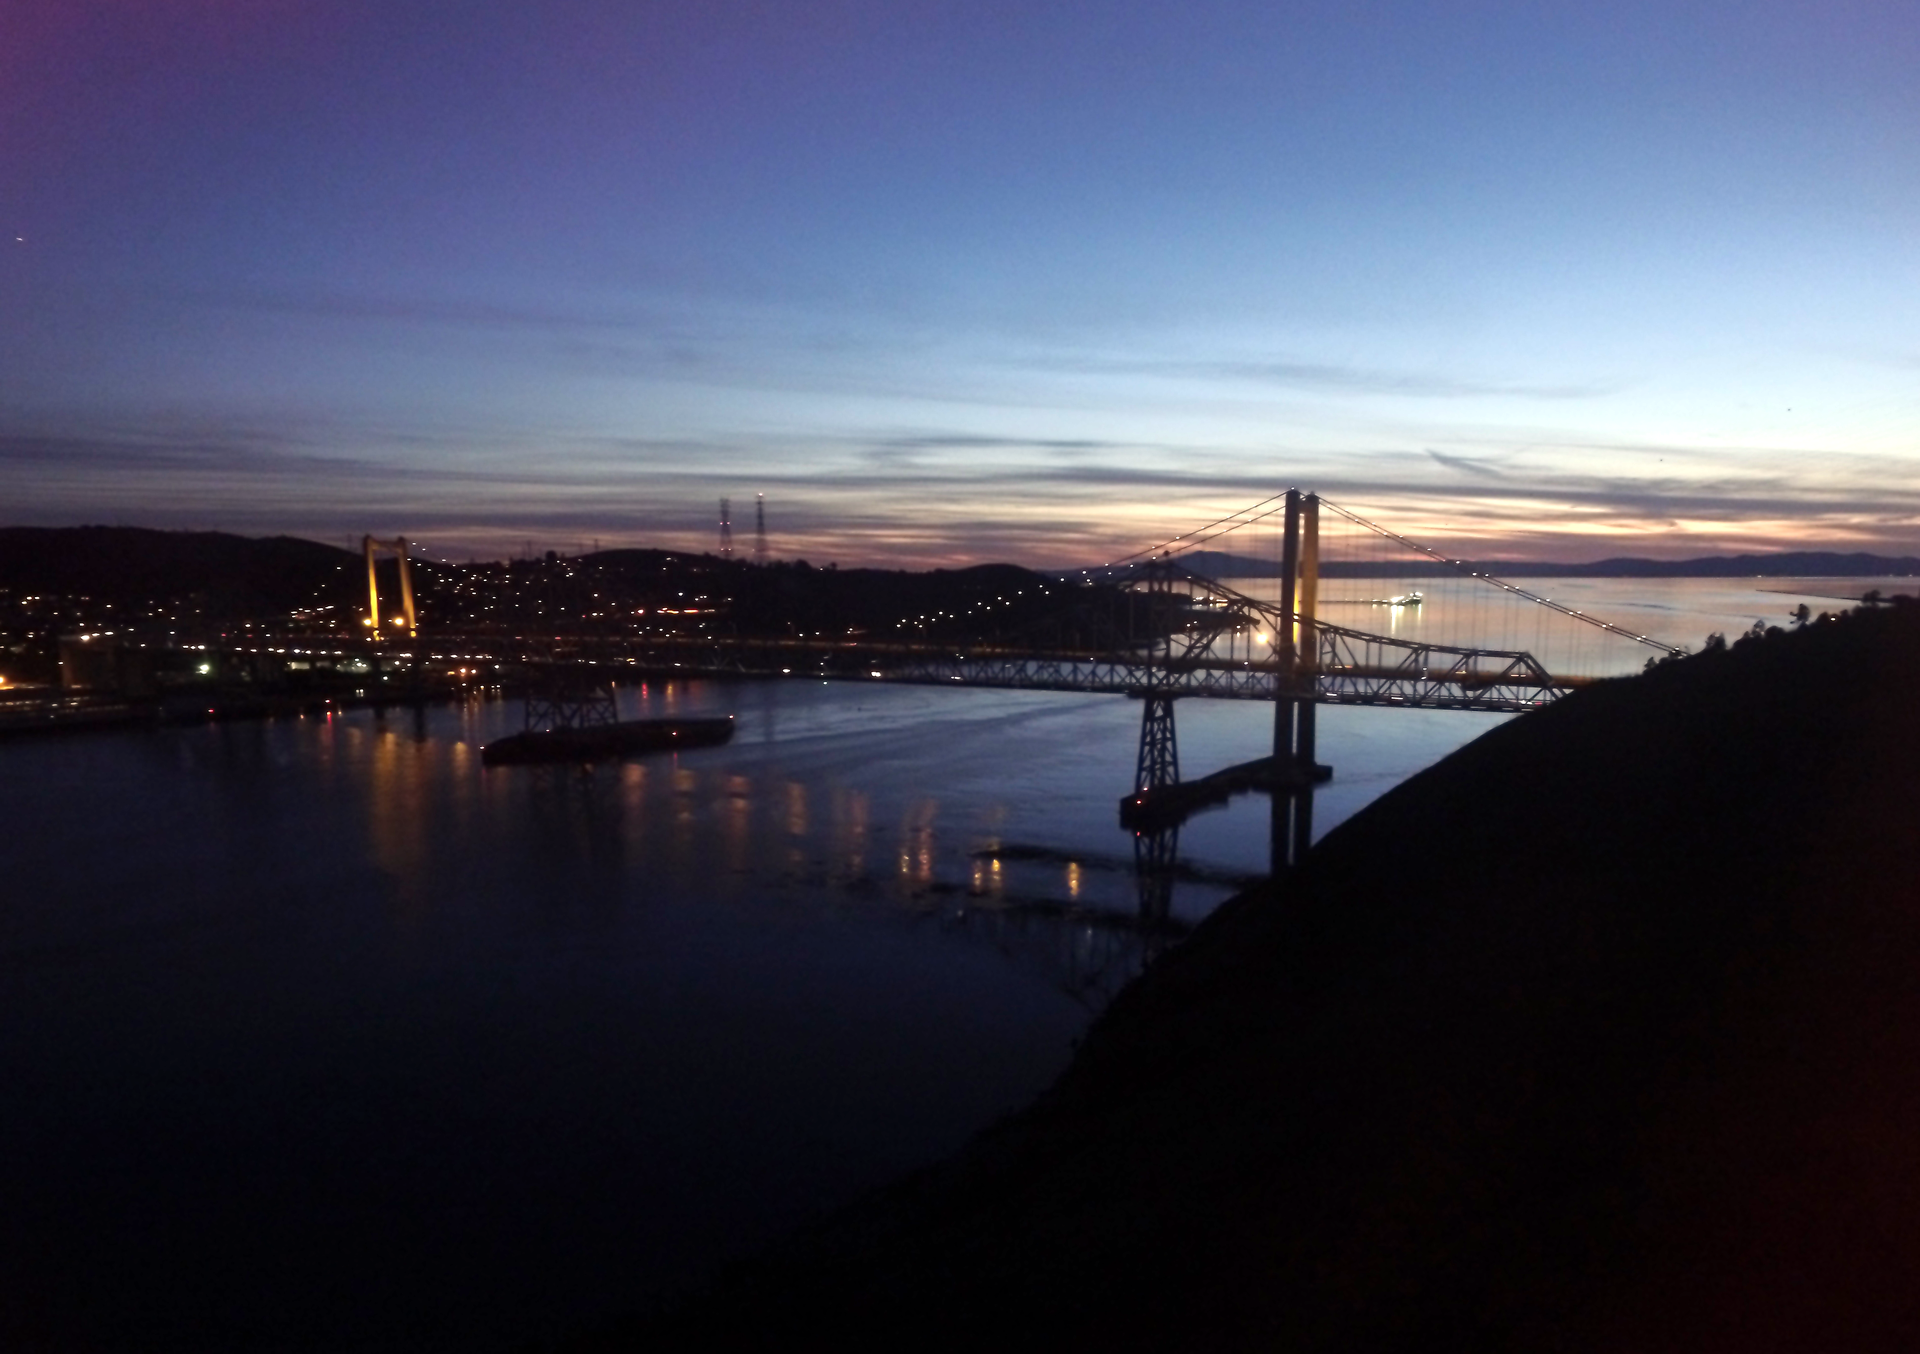 Carquinez Bridge over the Sacramento River, just after sunset.